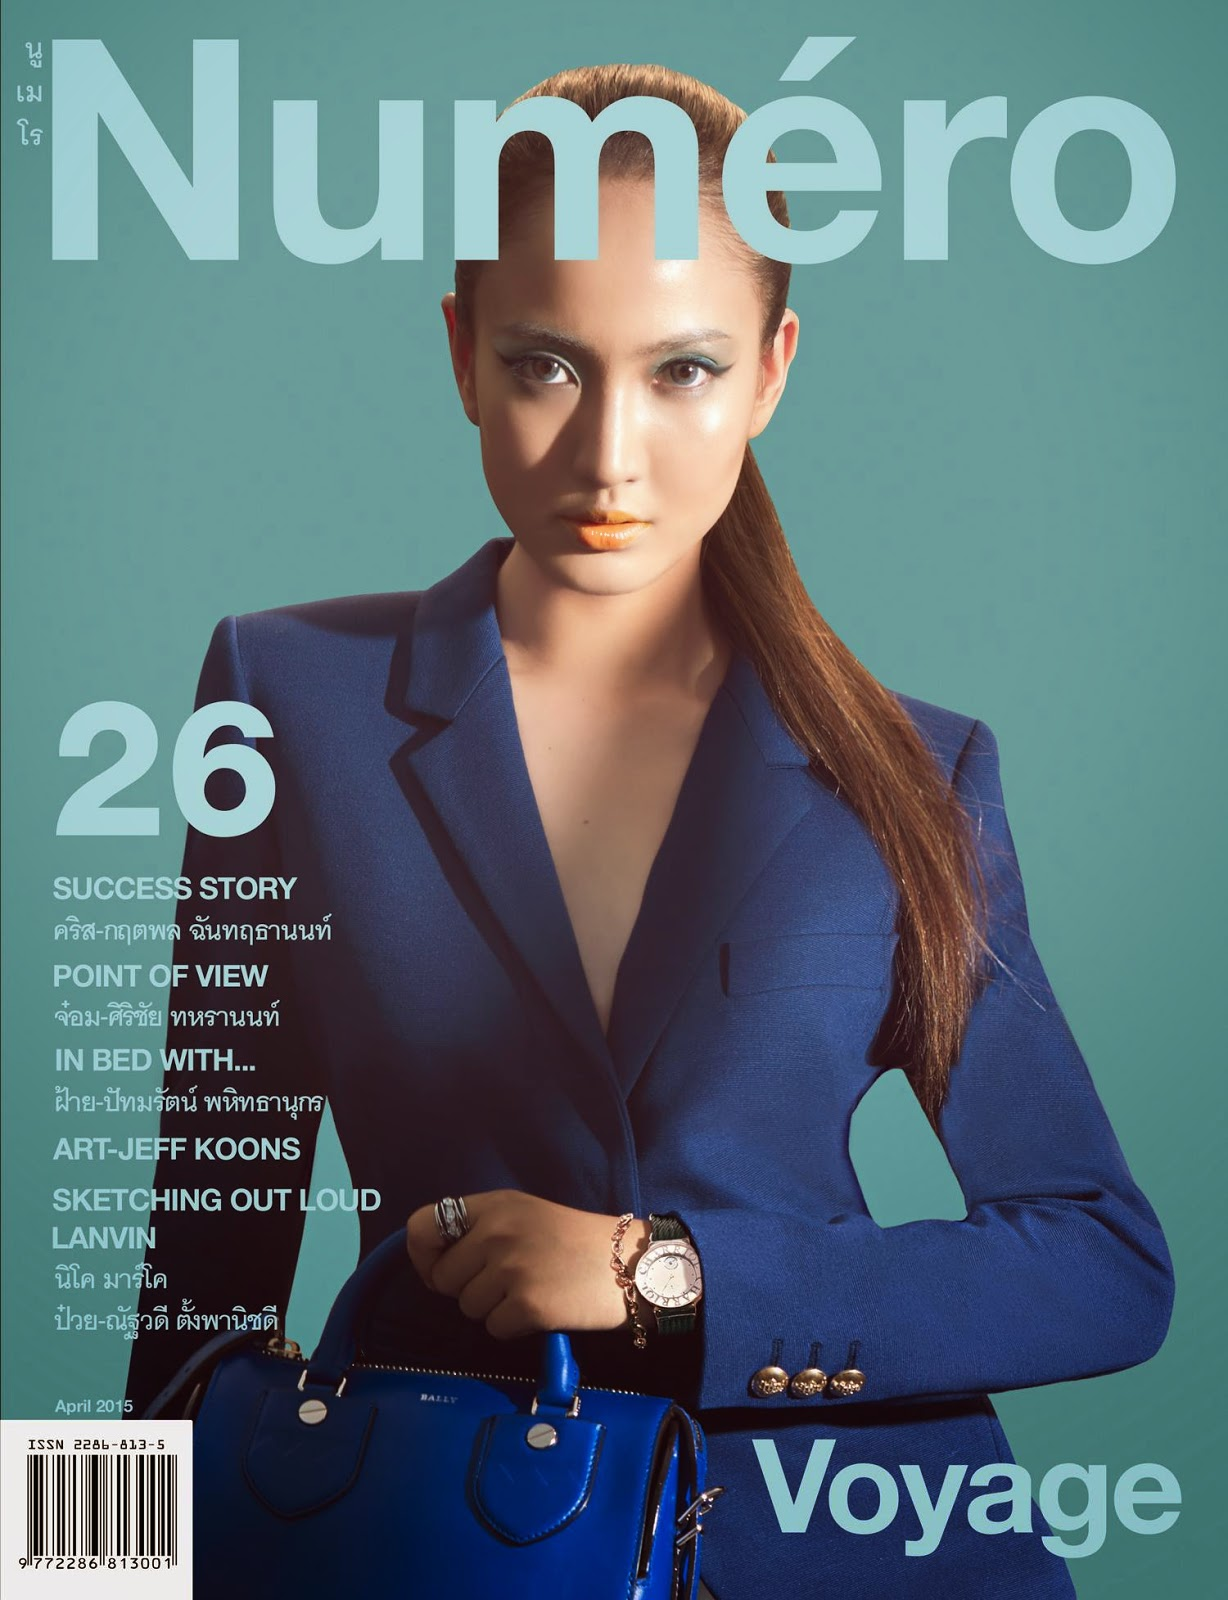 Actress @ Nathaphon Temirak by Pisid Whangvisarn for Numéro Thailand #26 April 2015